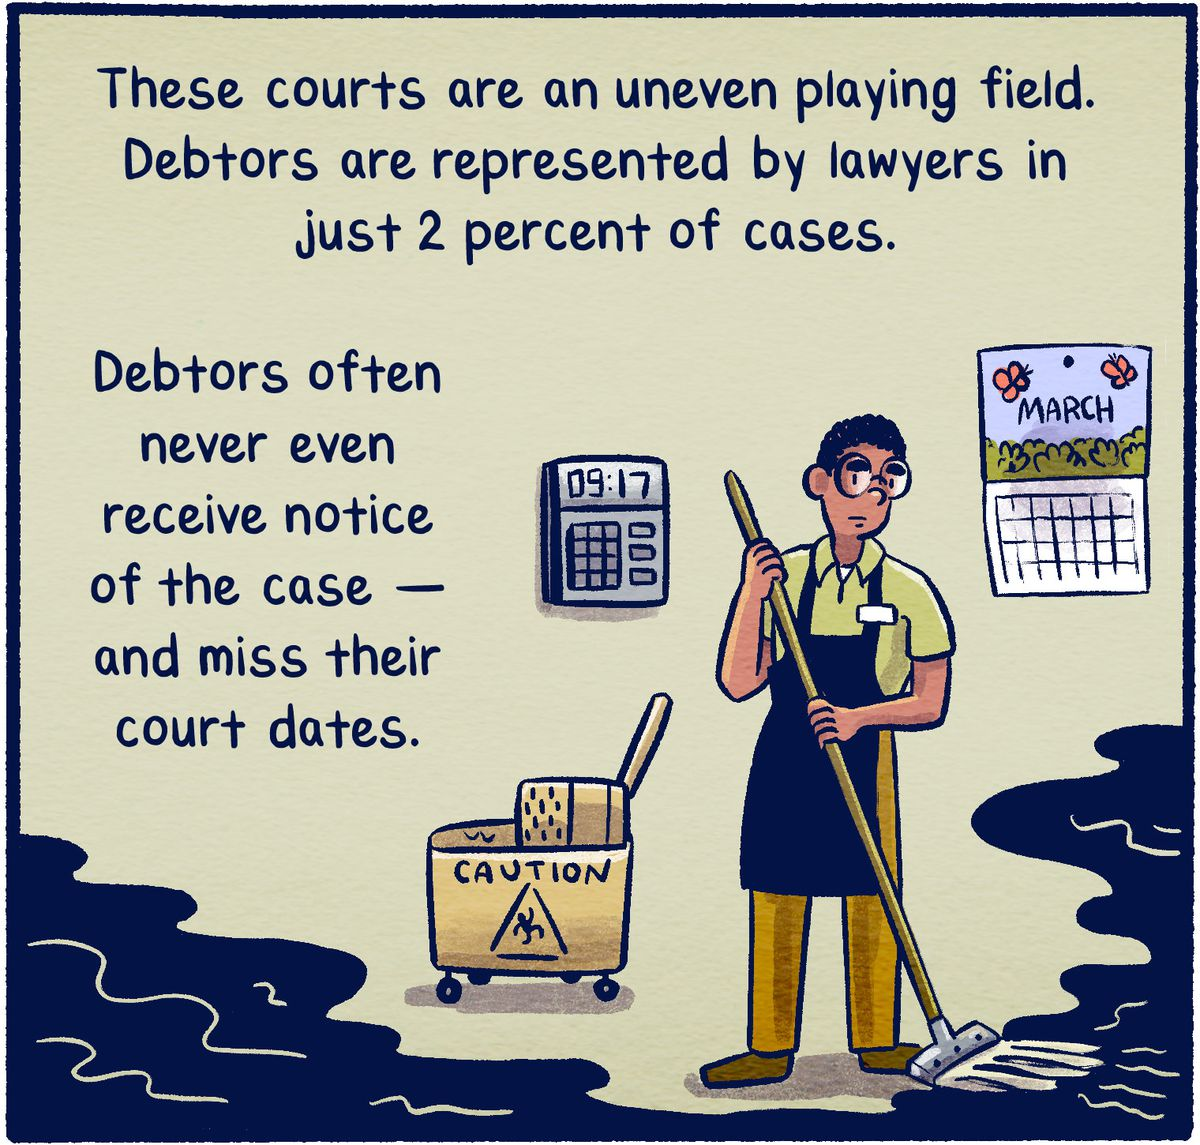 These courts are an uneven playing field. Debtors are represented by lawyers injust 2 percent of cases. Debtors often never even receive notice of the case — and miss their court dates.